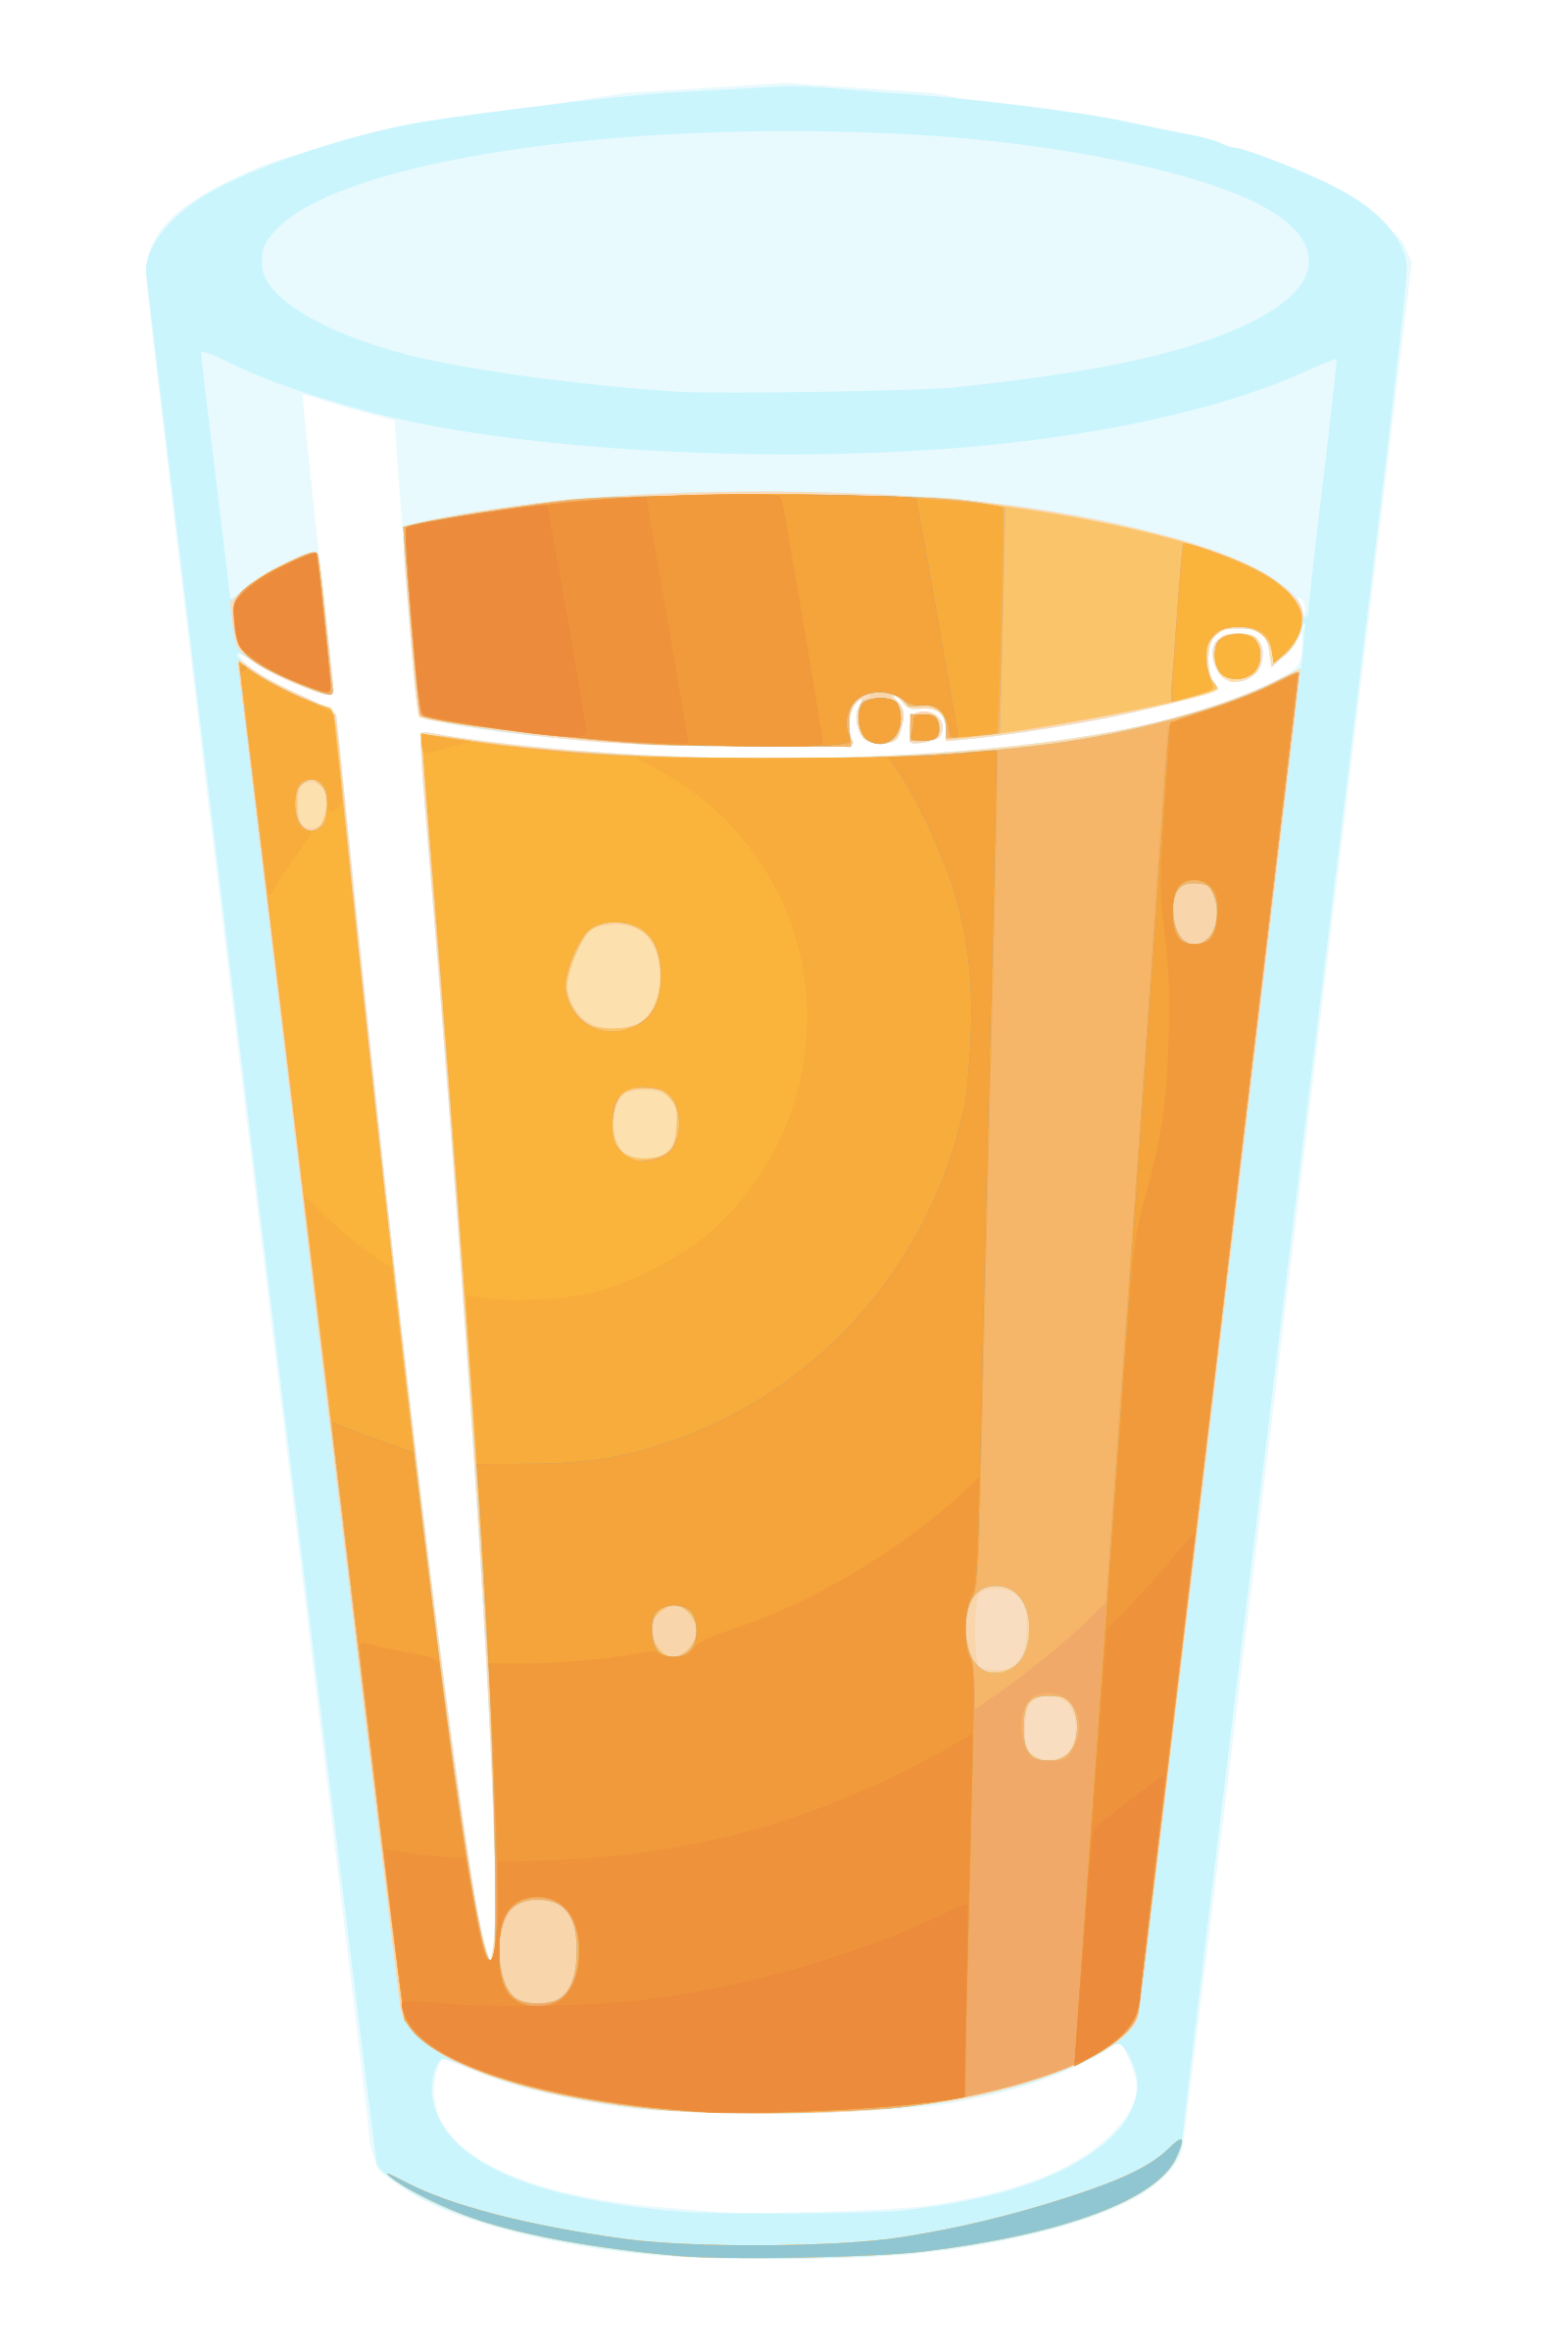 Juice vector transparent. Png pictures free icons